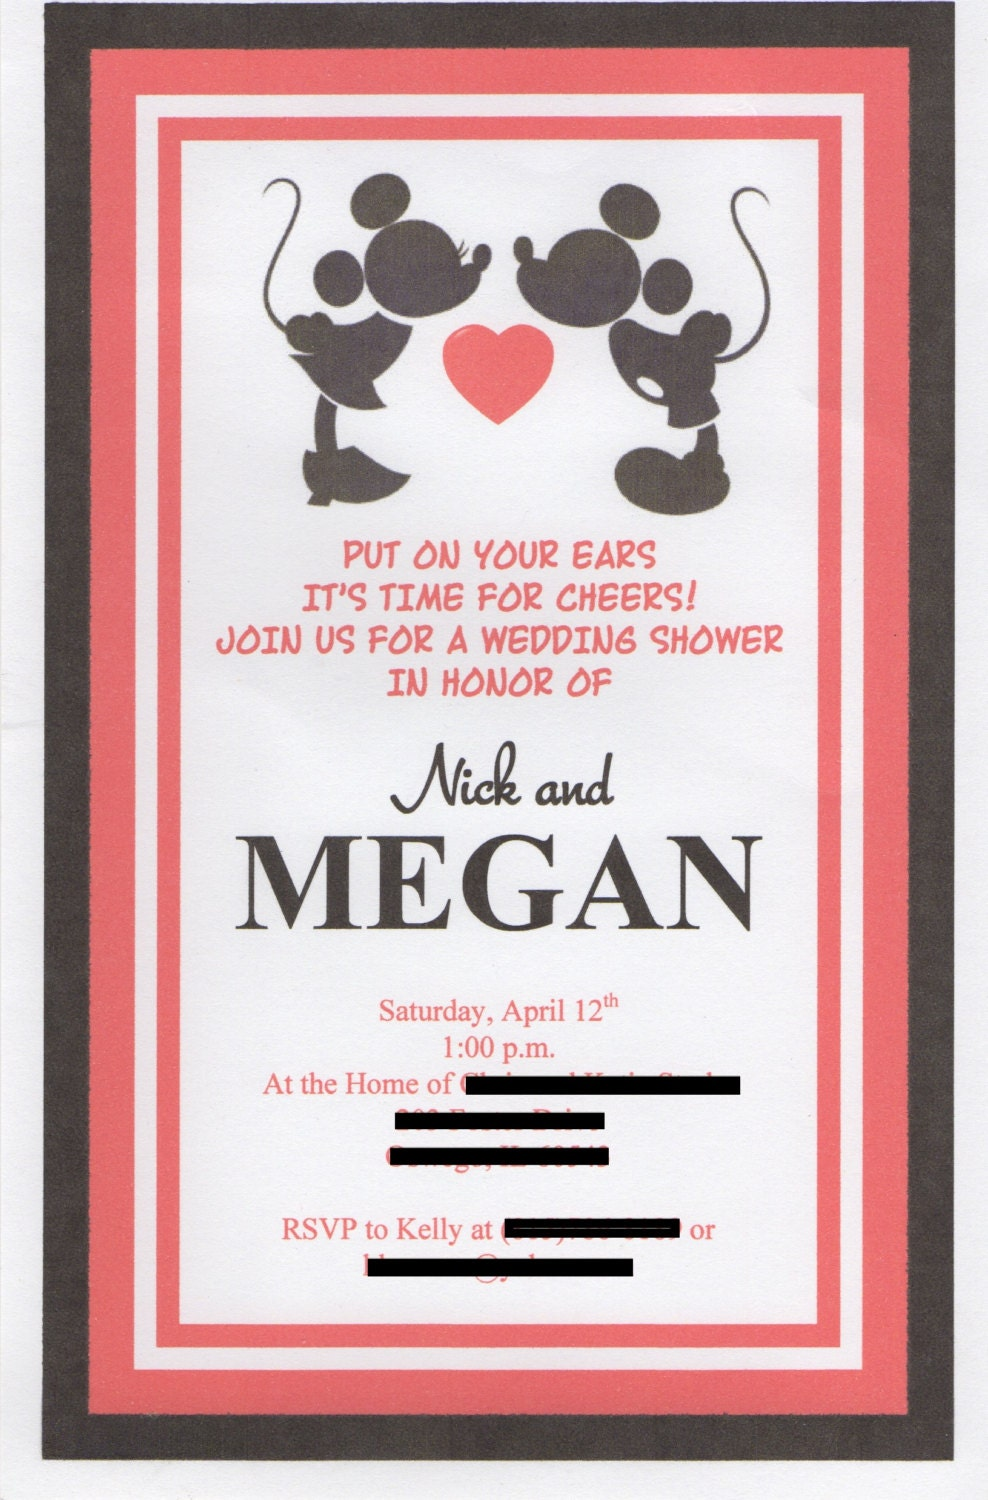 Disney Themed Wedding Invitations and get inspiration to create nice invitation ideas